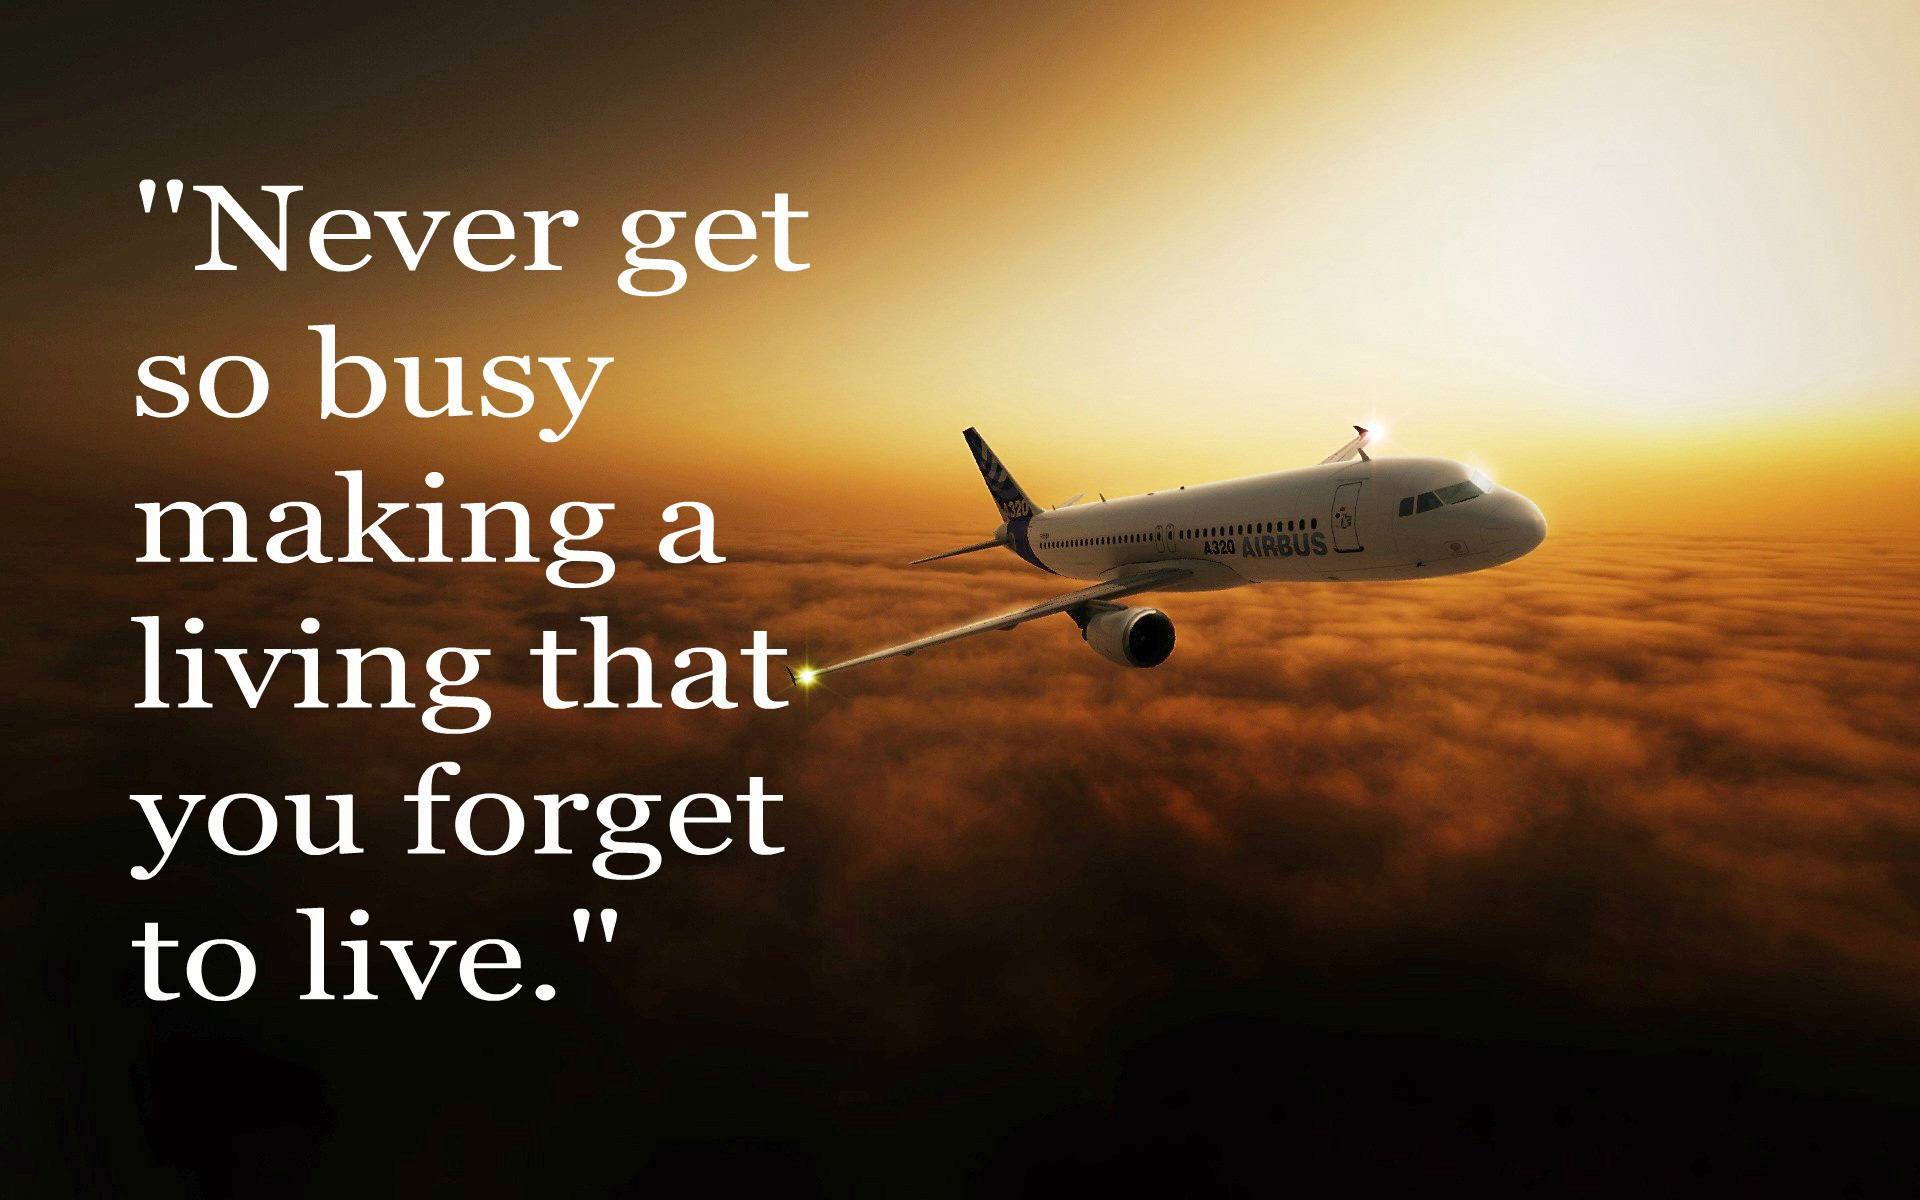 10 Best Travel Quotes That Inspire To